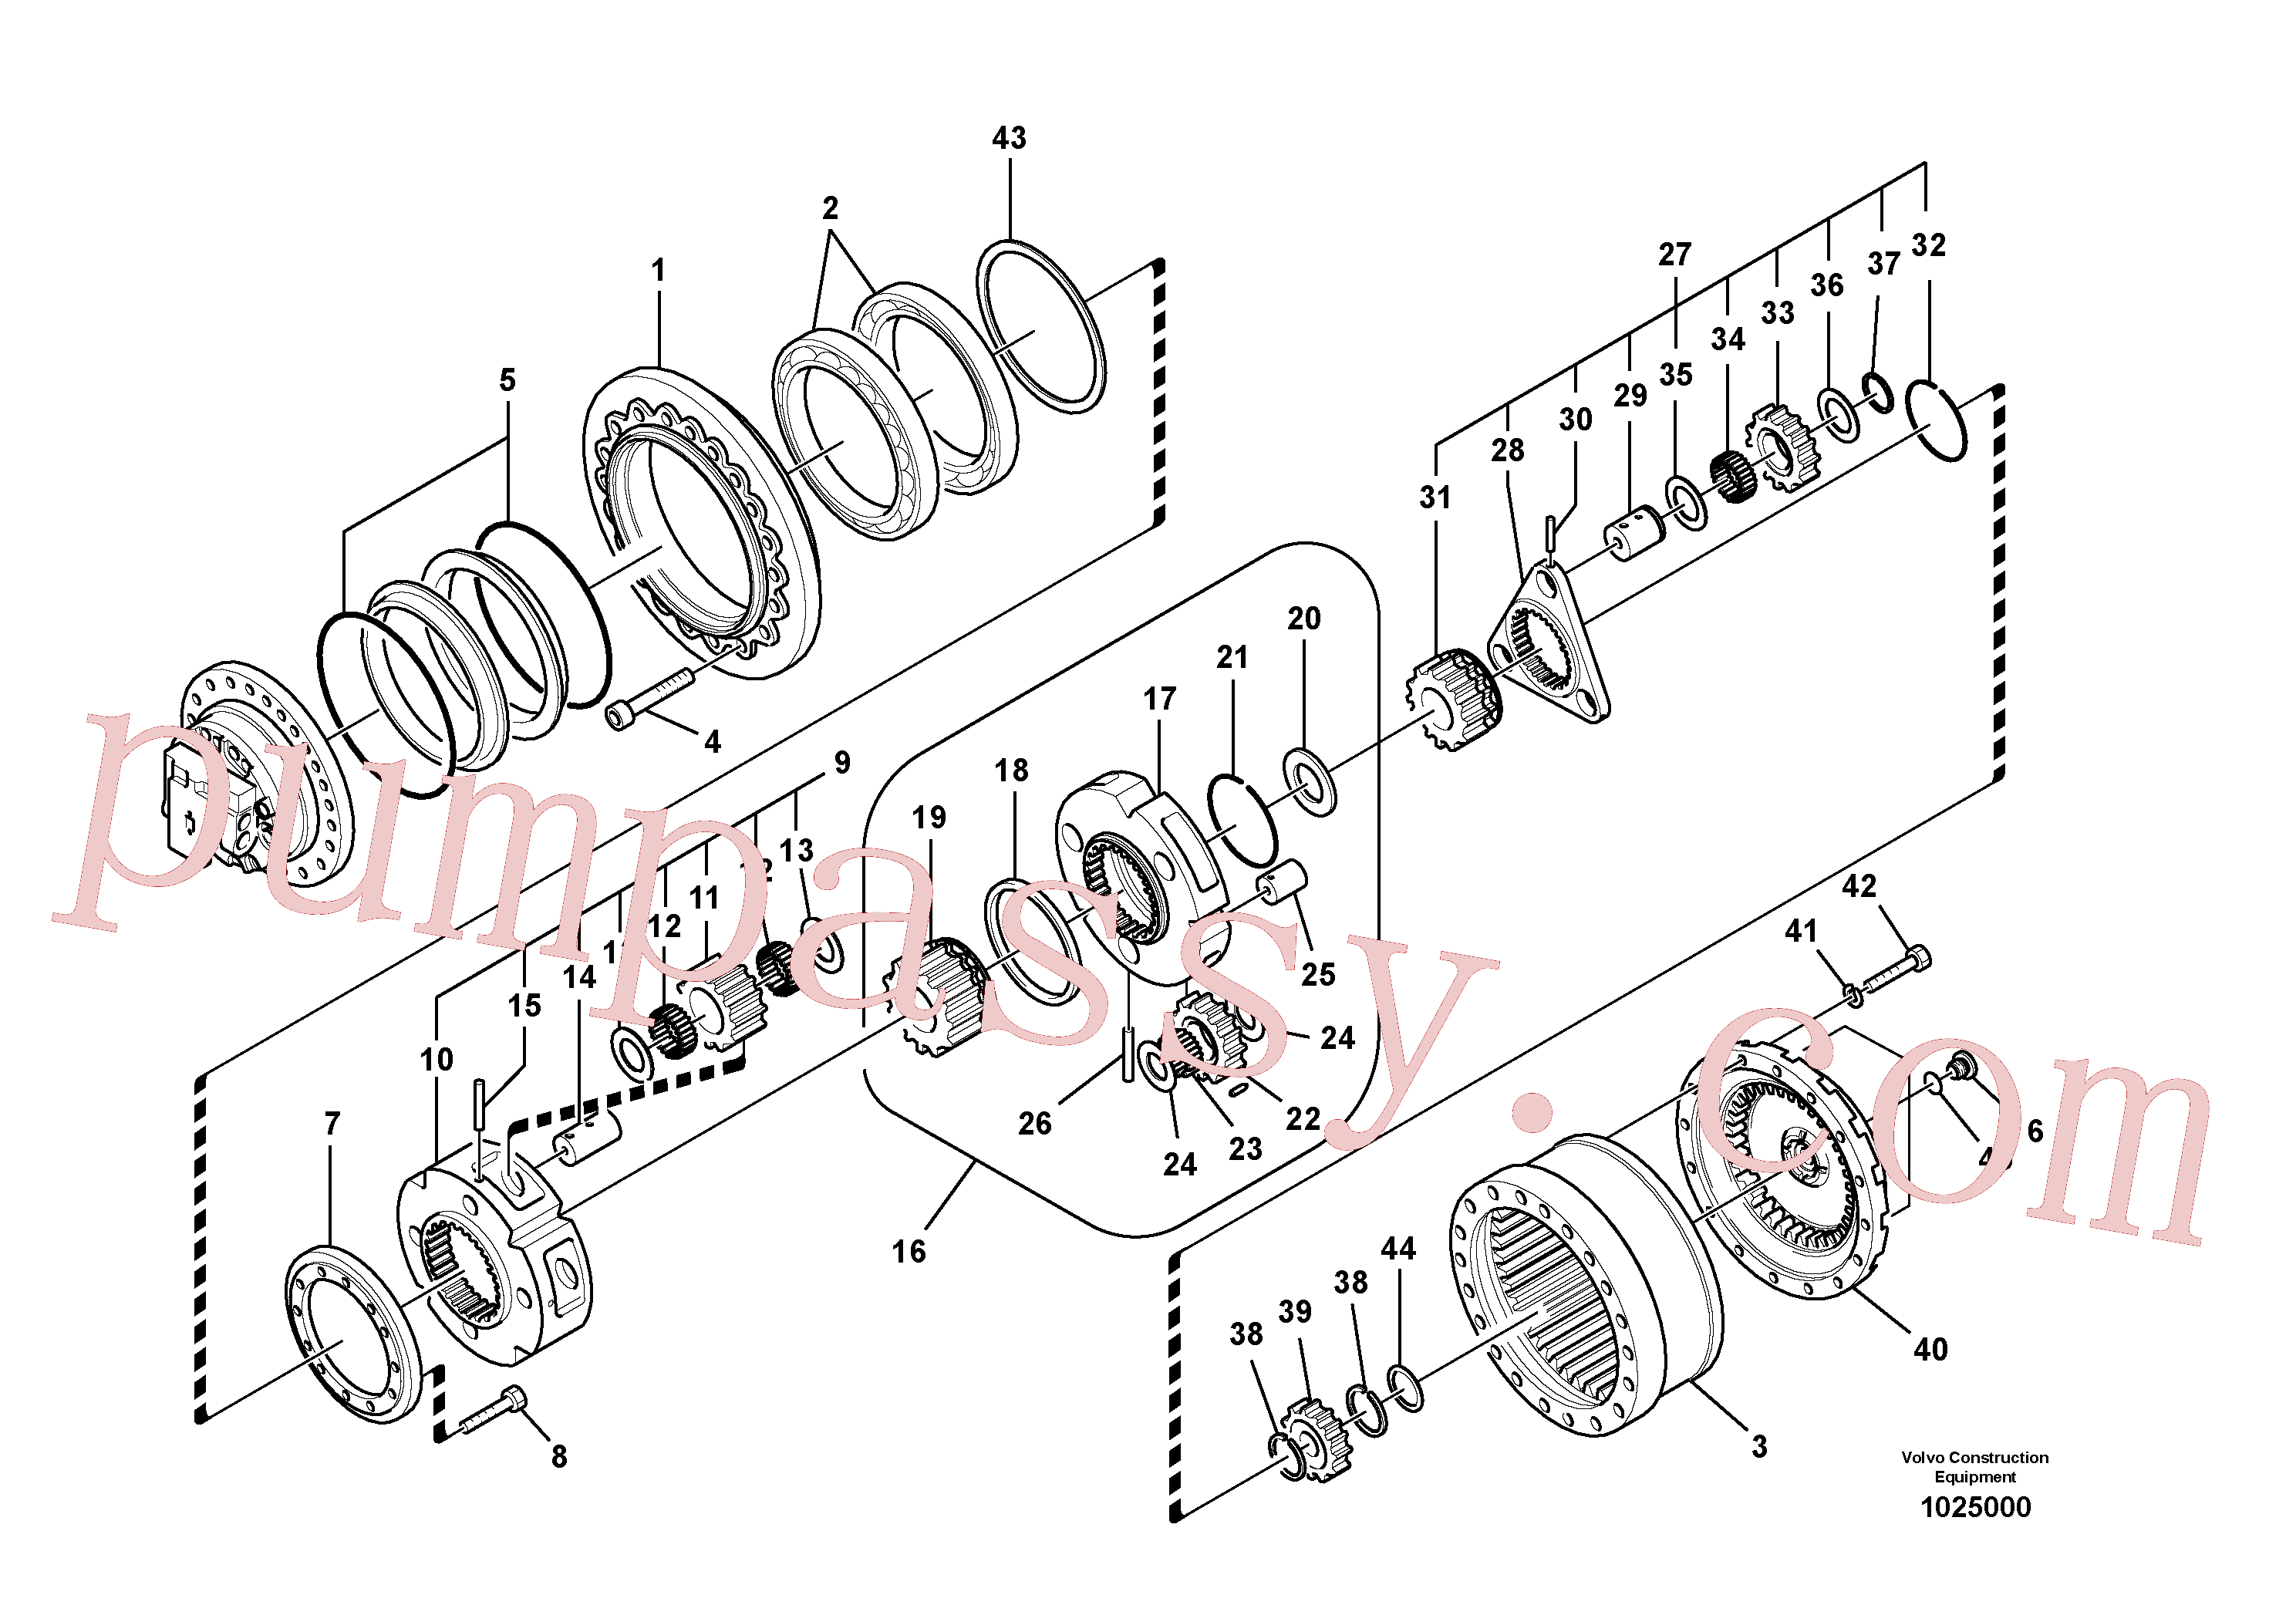 SA1036-00460 for Volvo Travel gearbox(1025000 assembly)